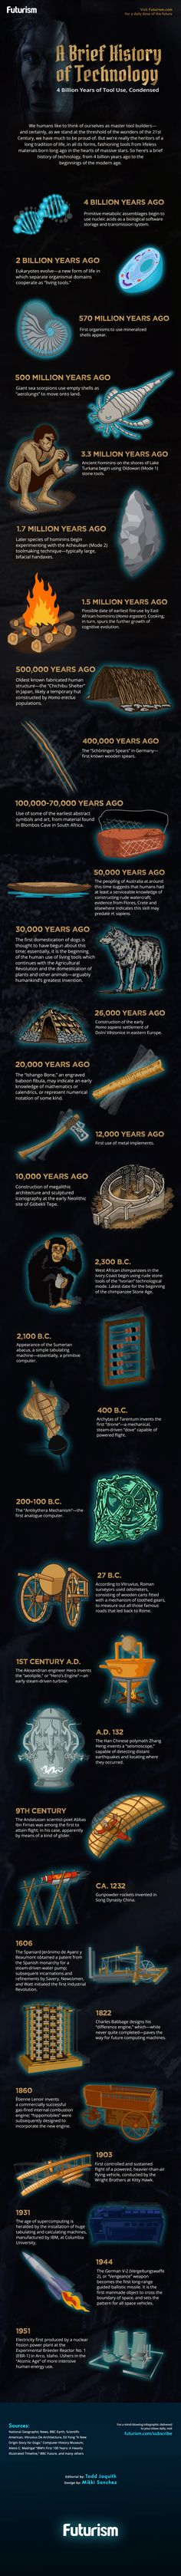 80 Best History of    images in 2019 | Infographic, Computer